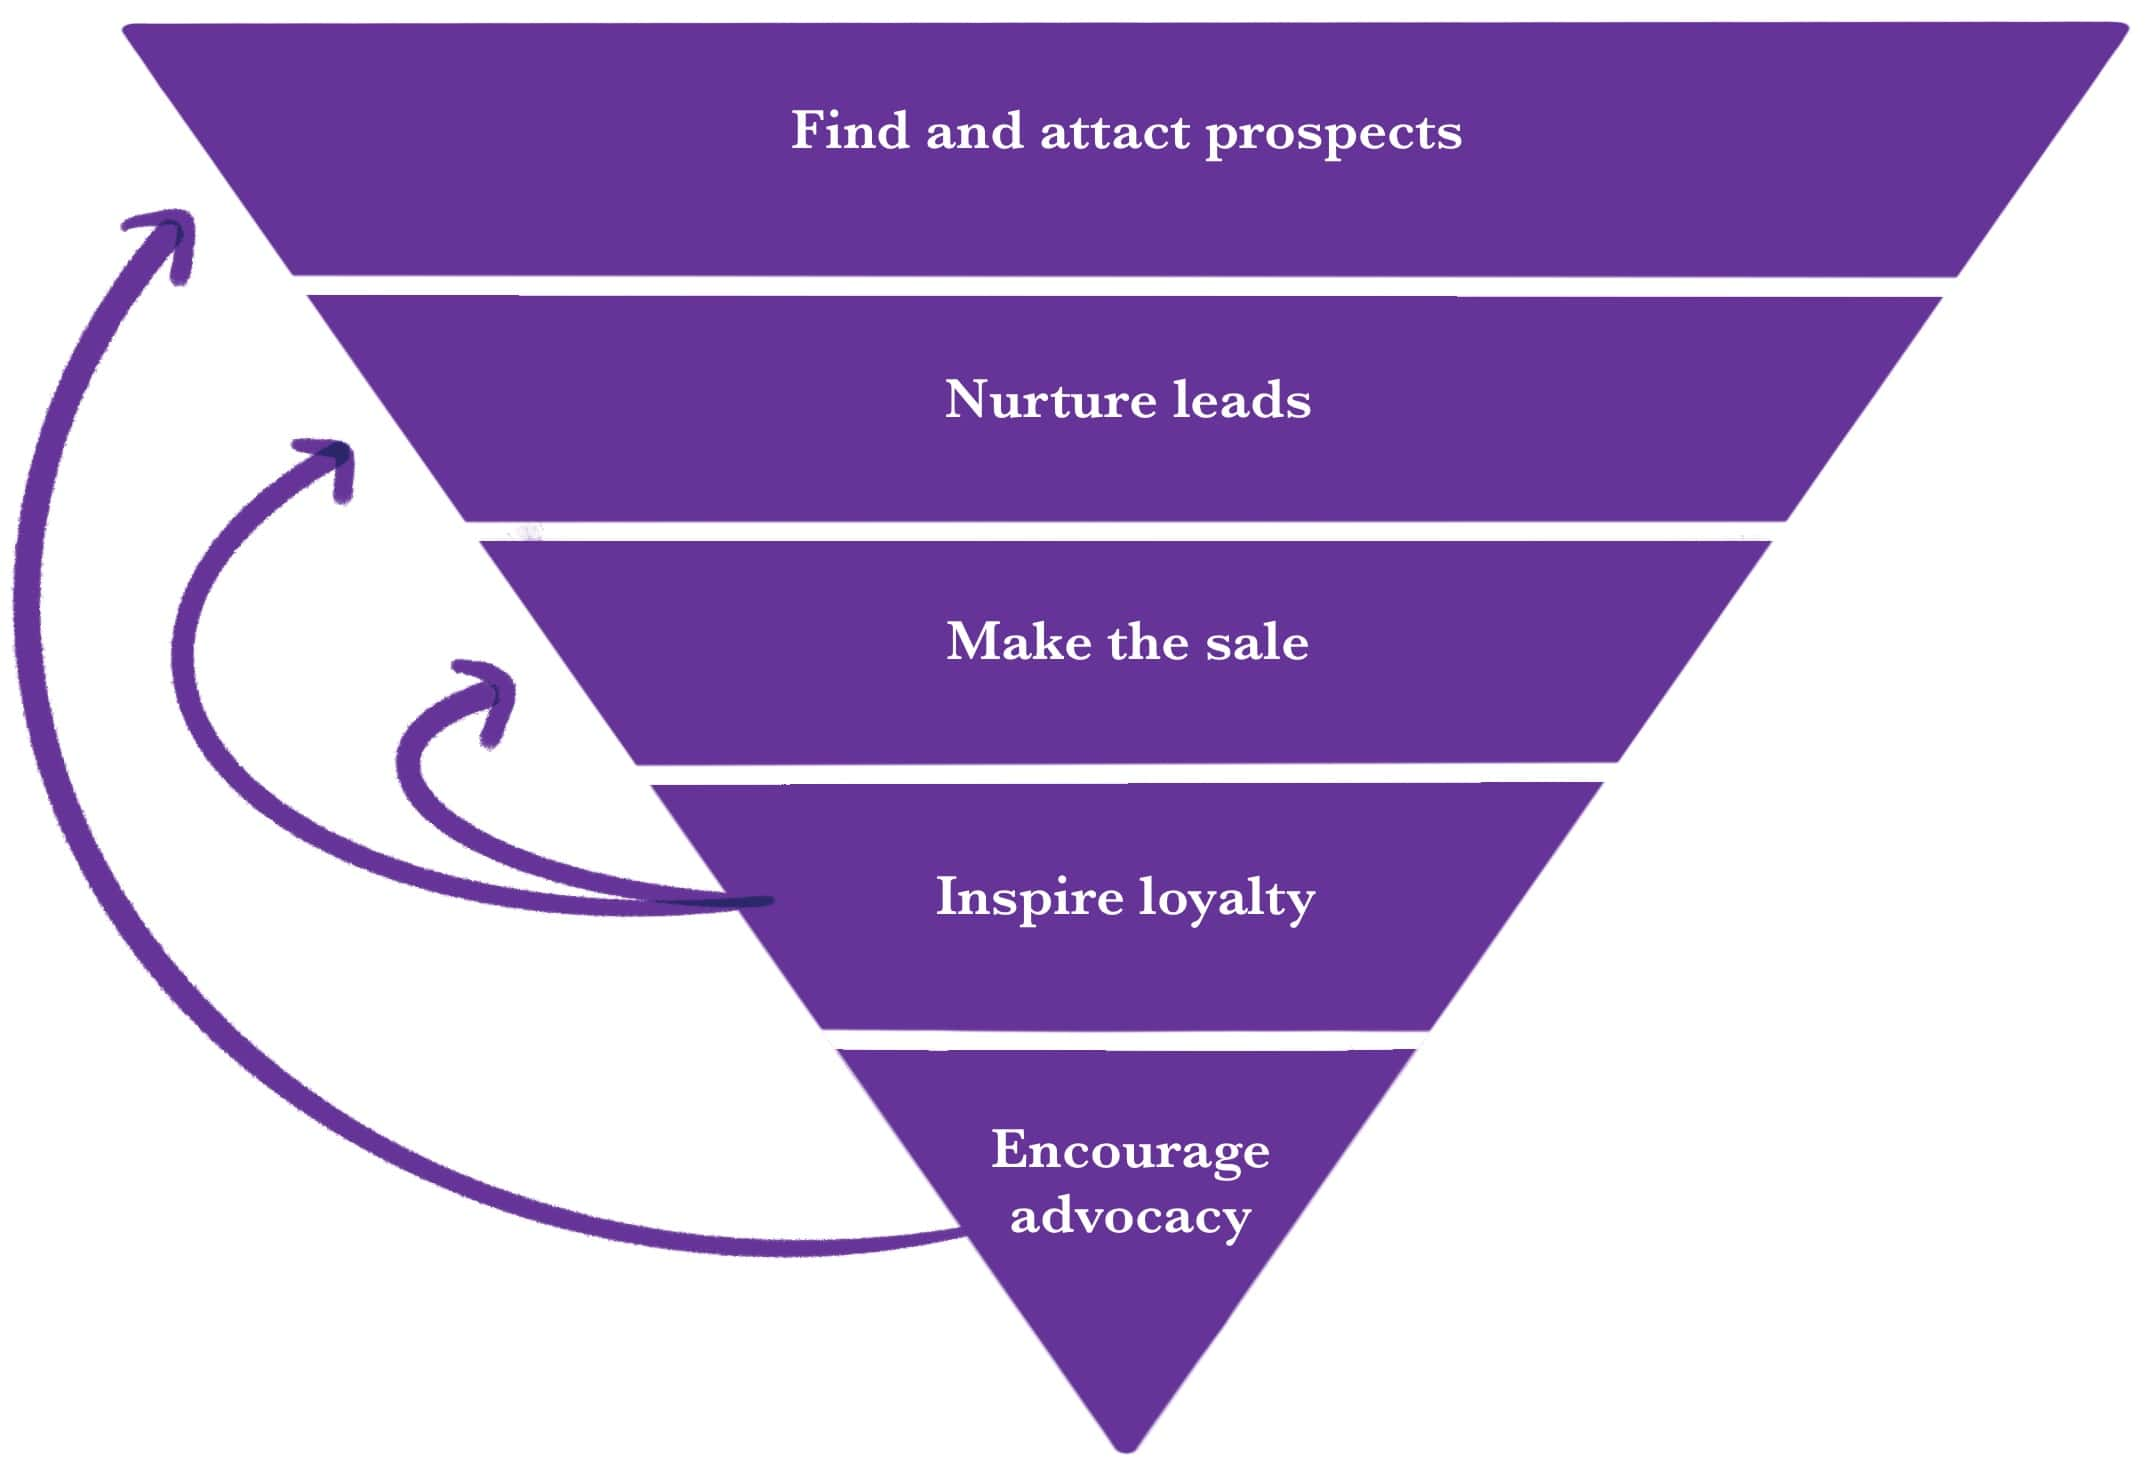 An inverted pyramid showing that the states of the typical sales funnel are find and attract prospects; nurture leads; make the sale; inspire loyalty; and encourage advocacy and that loyal customers can be nurtured to make additional sales and advocates bring in new prospects